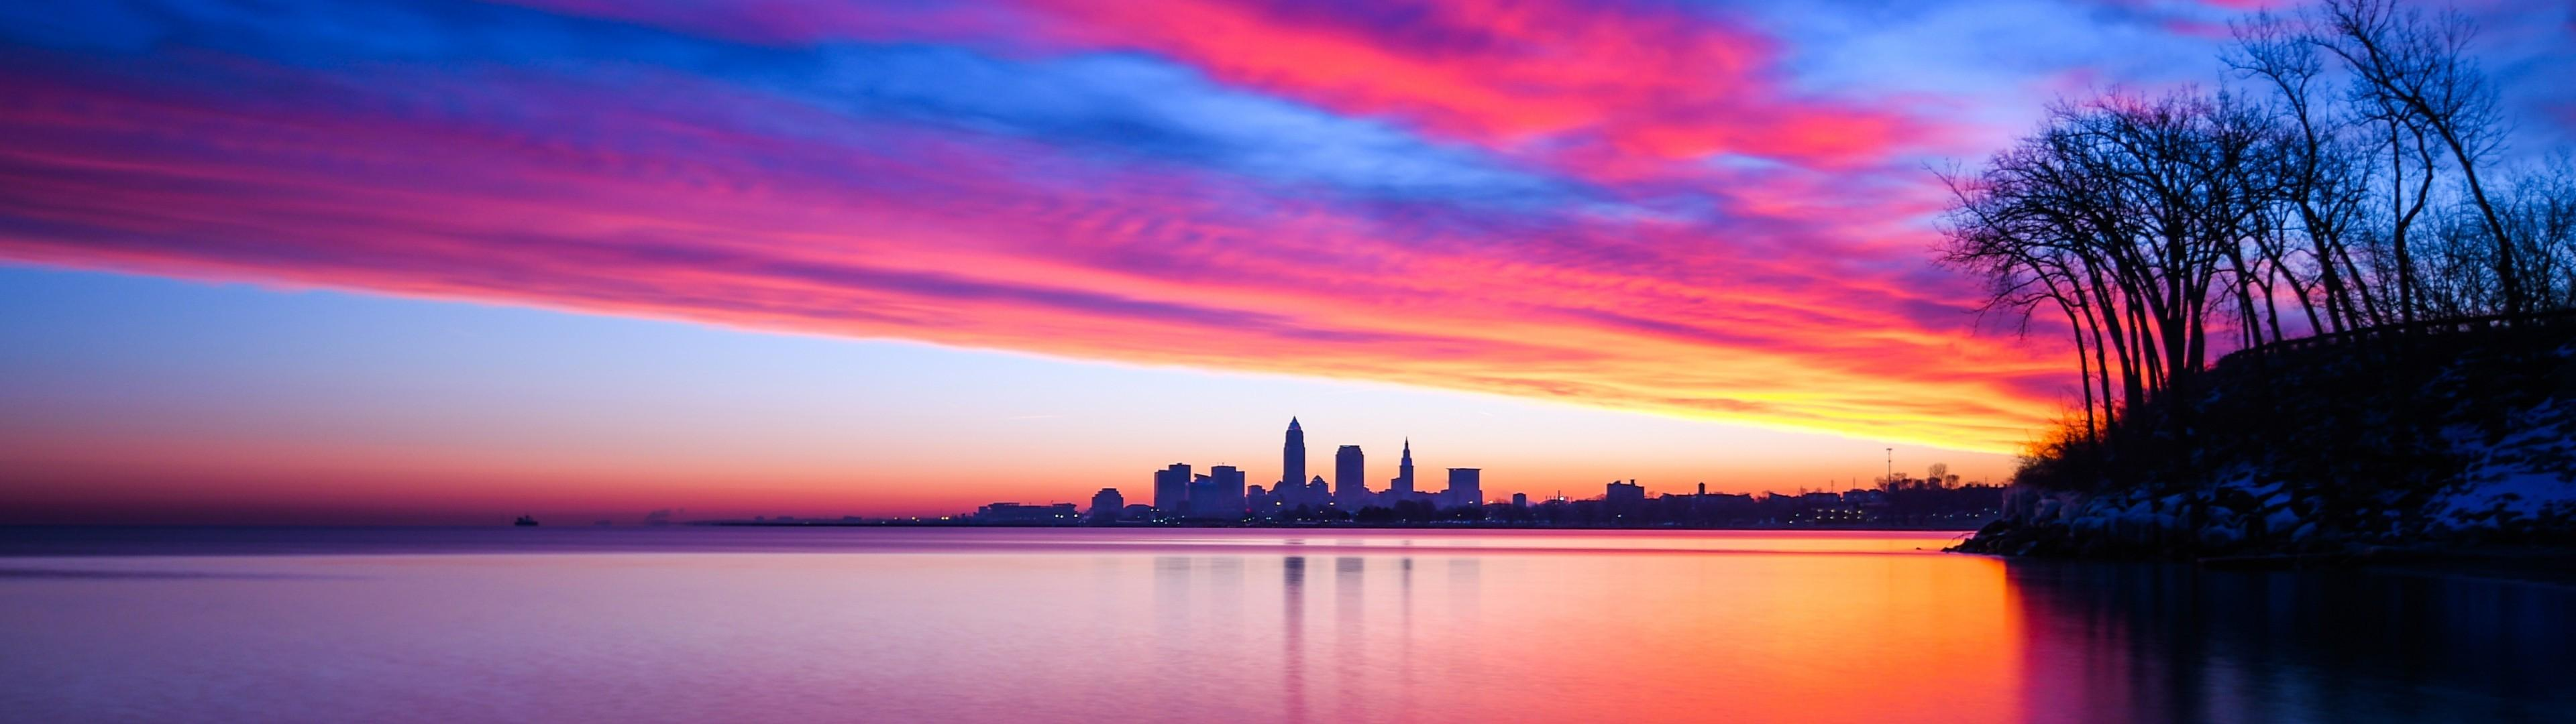 Download 3840x1080 United States, Cleveland, Ohio, Sunset, Clouds